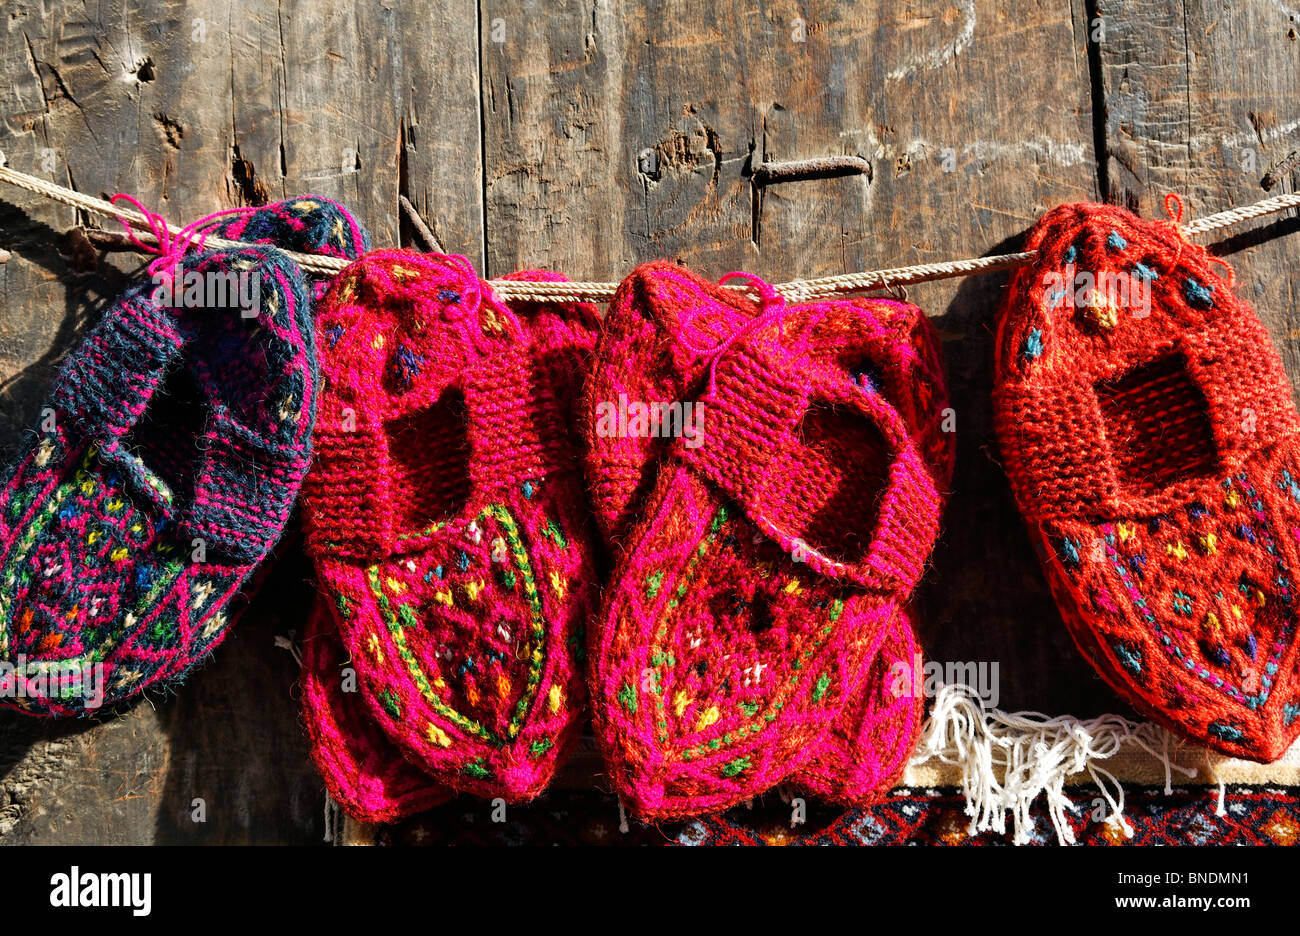 Display of woollen baby shoes outside a shop, Lahic village, Azerbaijan - Stock Image